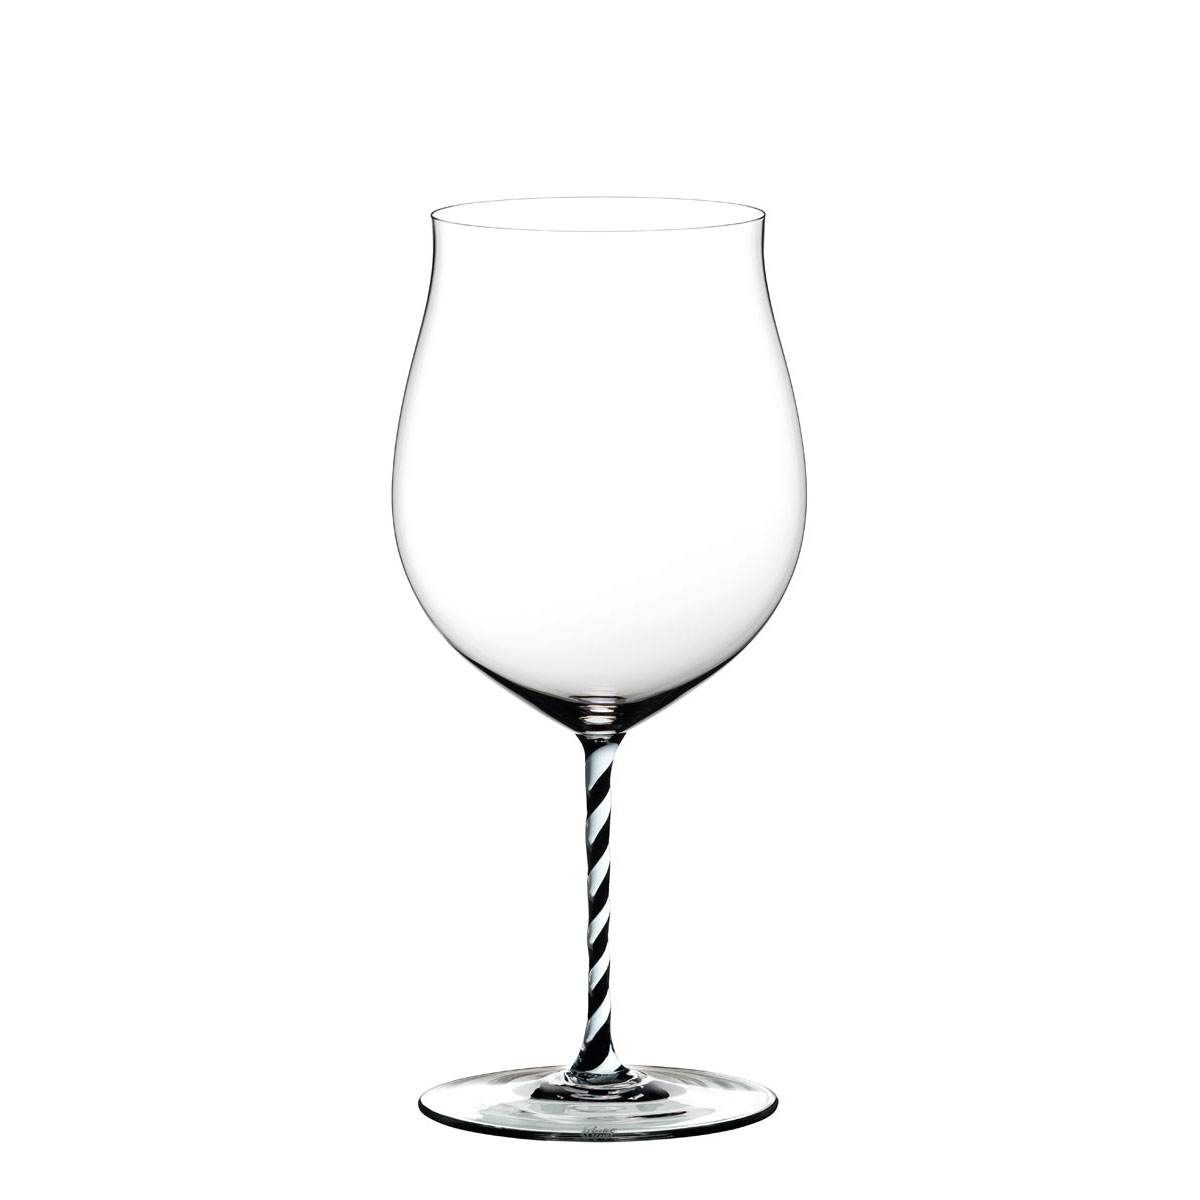 Riedel Fatto A Mano, Burgundy Grand Cru, Black and White Twist Crystal Wine Glass